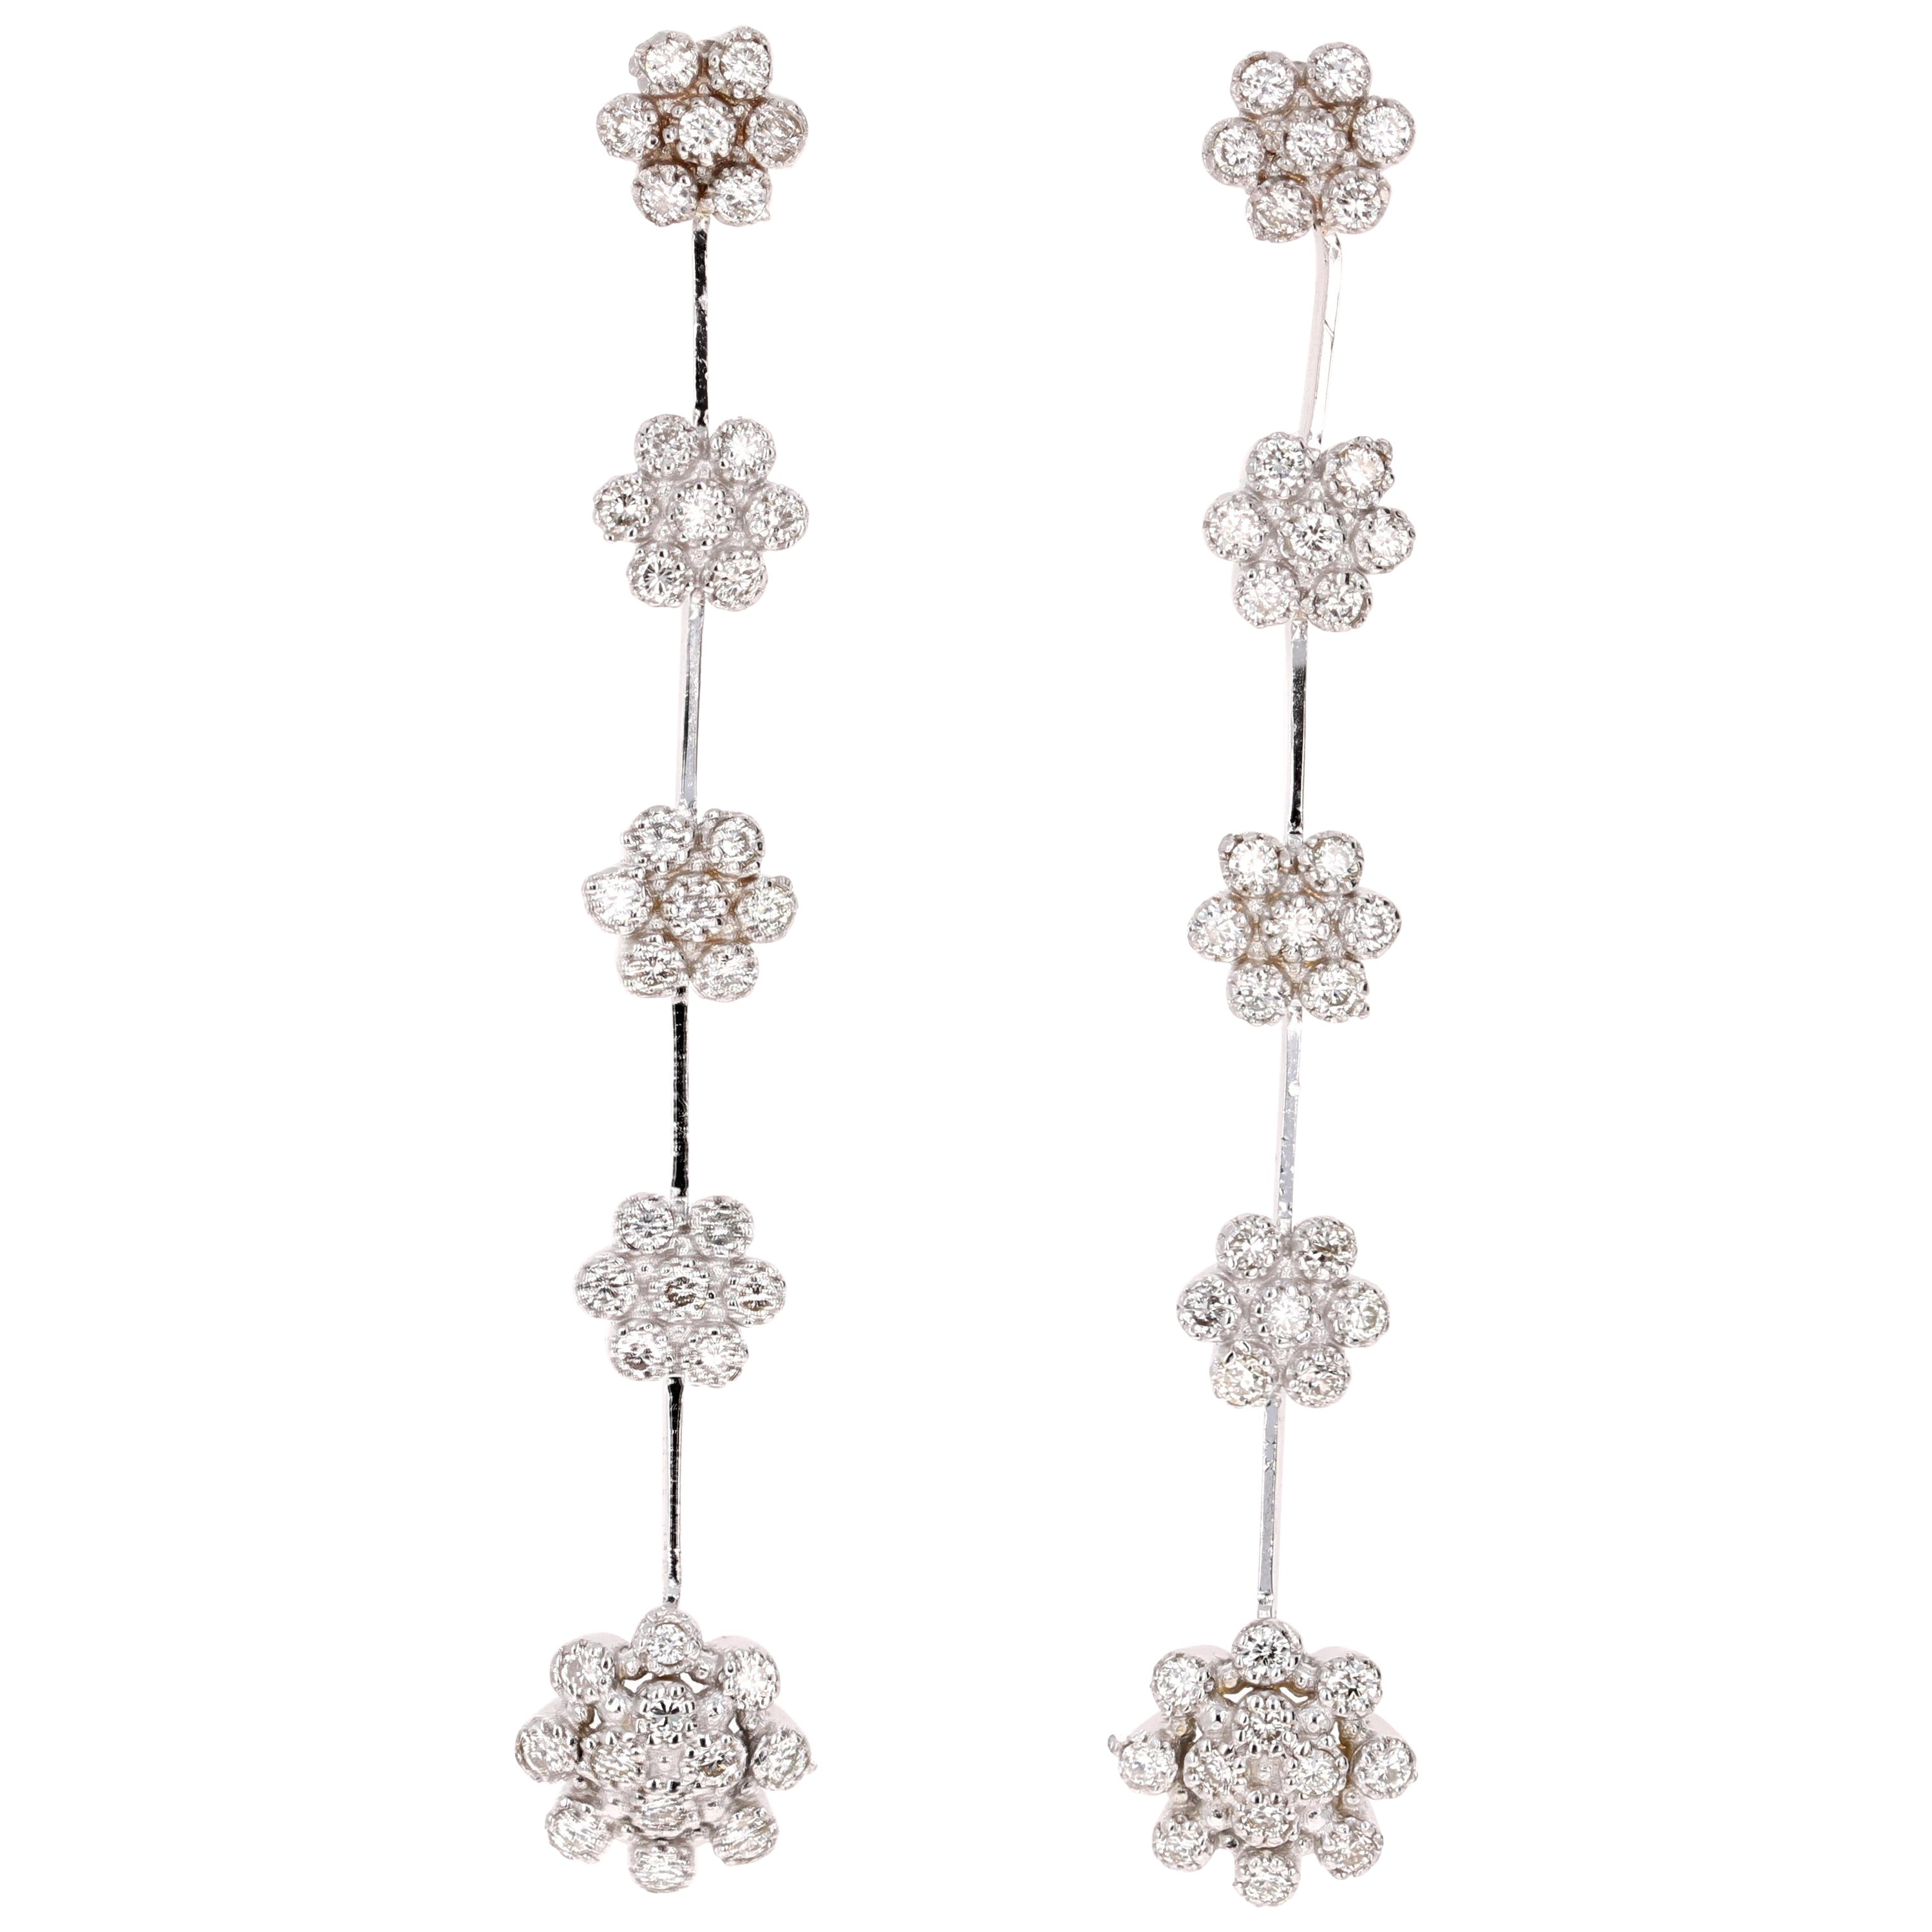 0.95 Carat Diamond Dangling 14 Karat White Gold Earrings